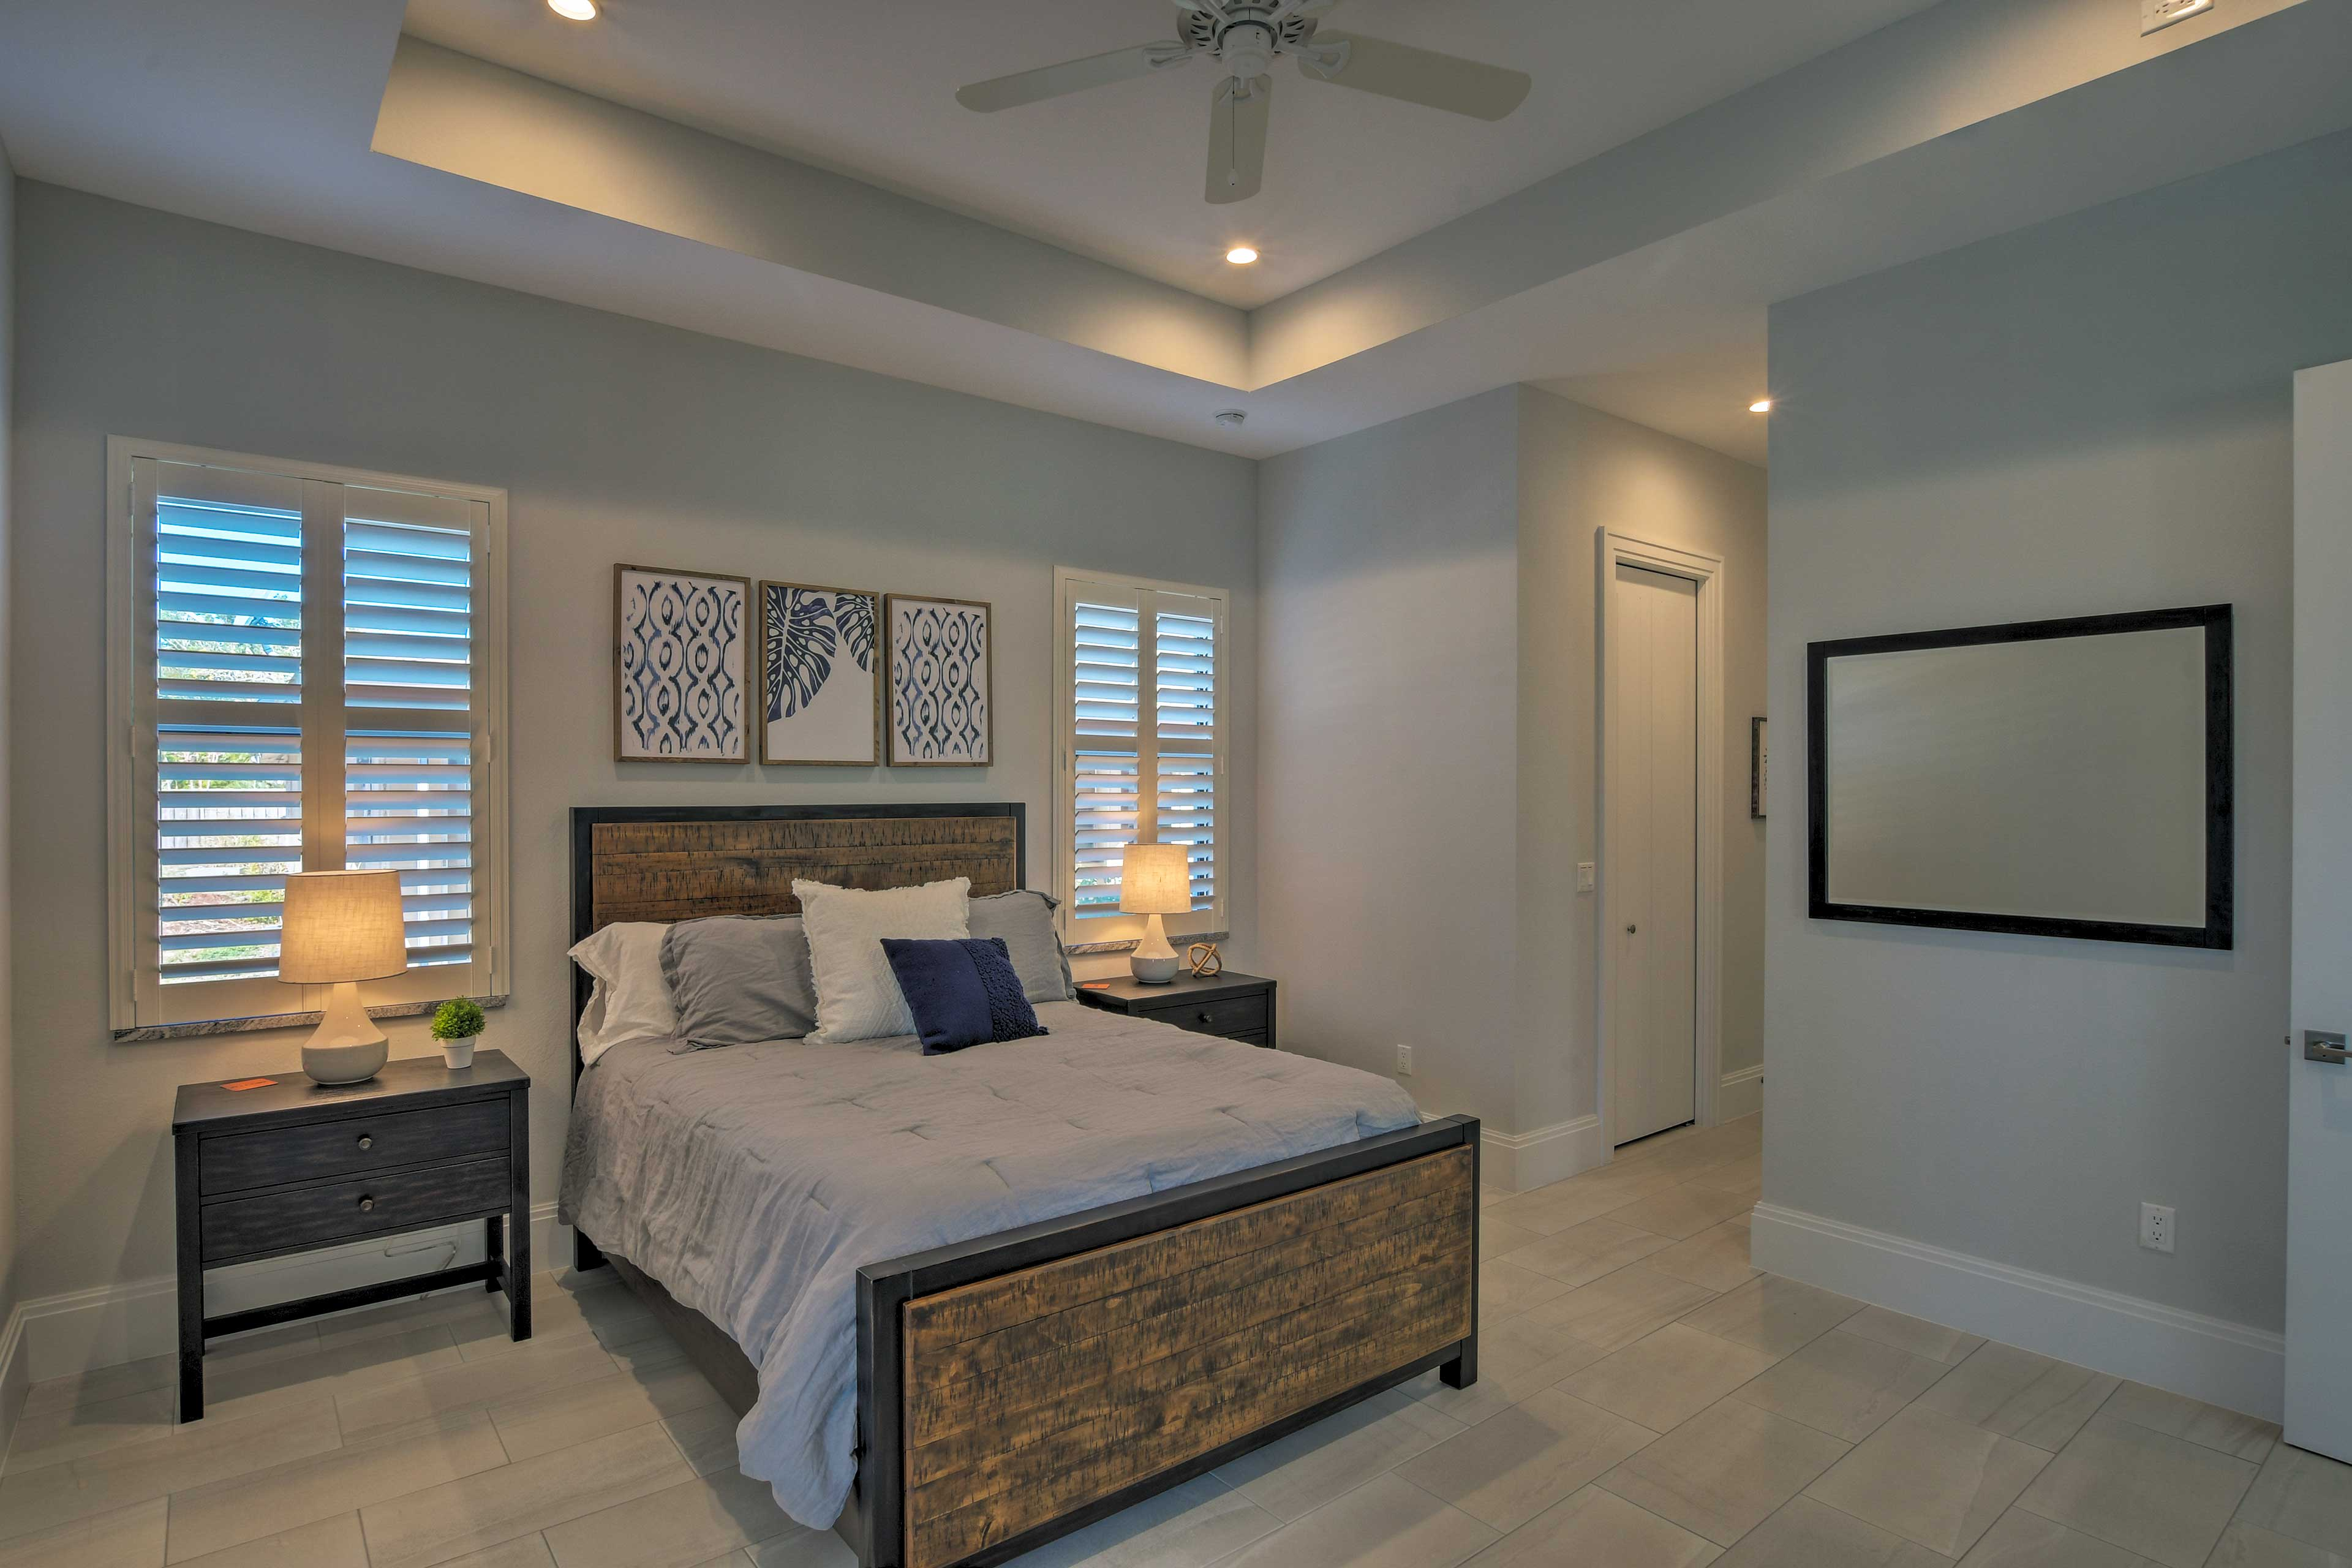 The master bedroom offers ample space to spread out and relax.